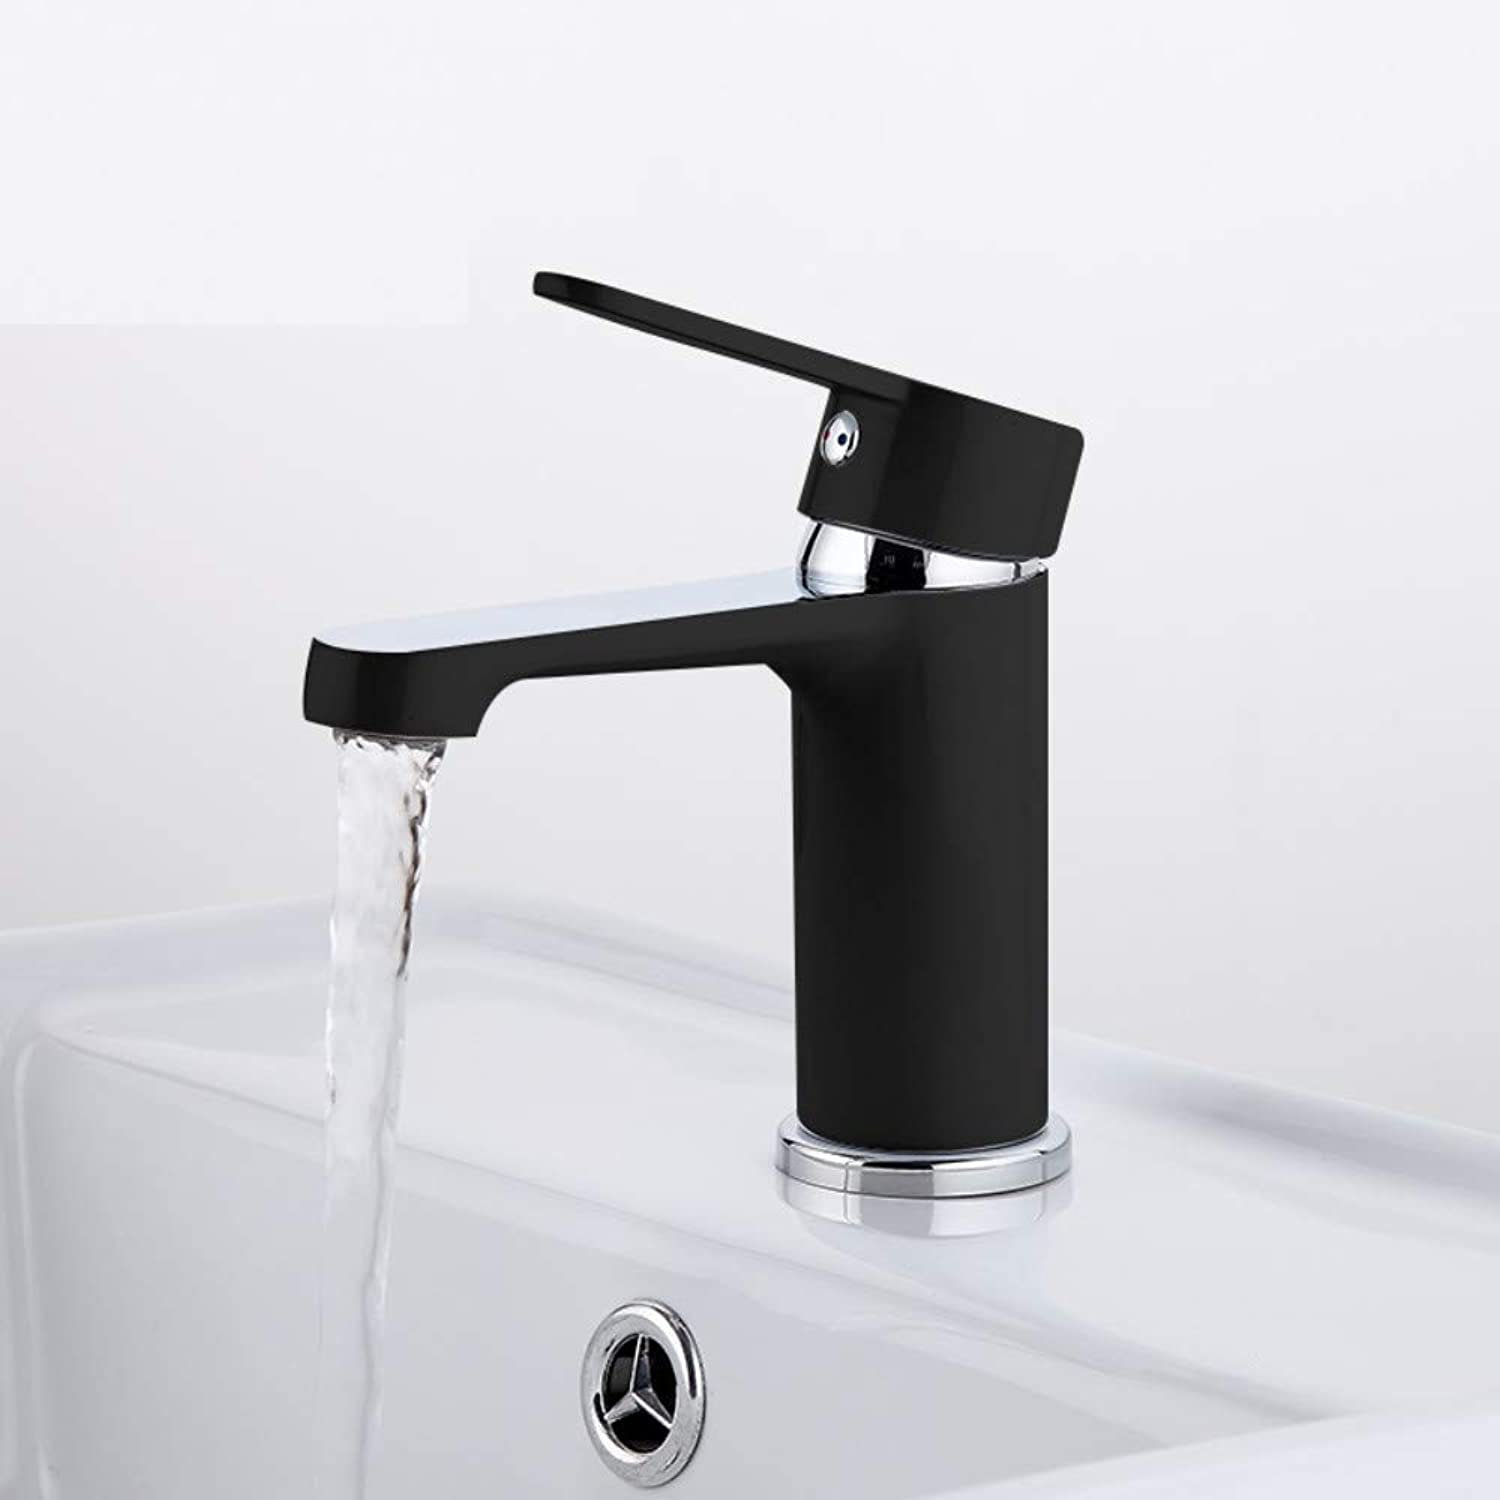 ROKTONG RAP Fashion Style Home Multi-color Bath Basin Faucet Cold and Hot Water Taps black White bathroom mixer